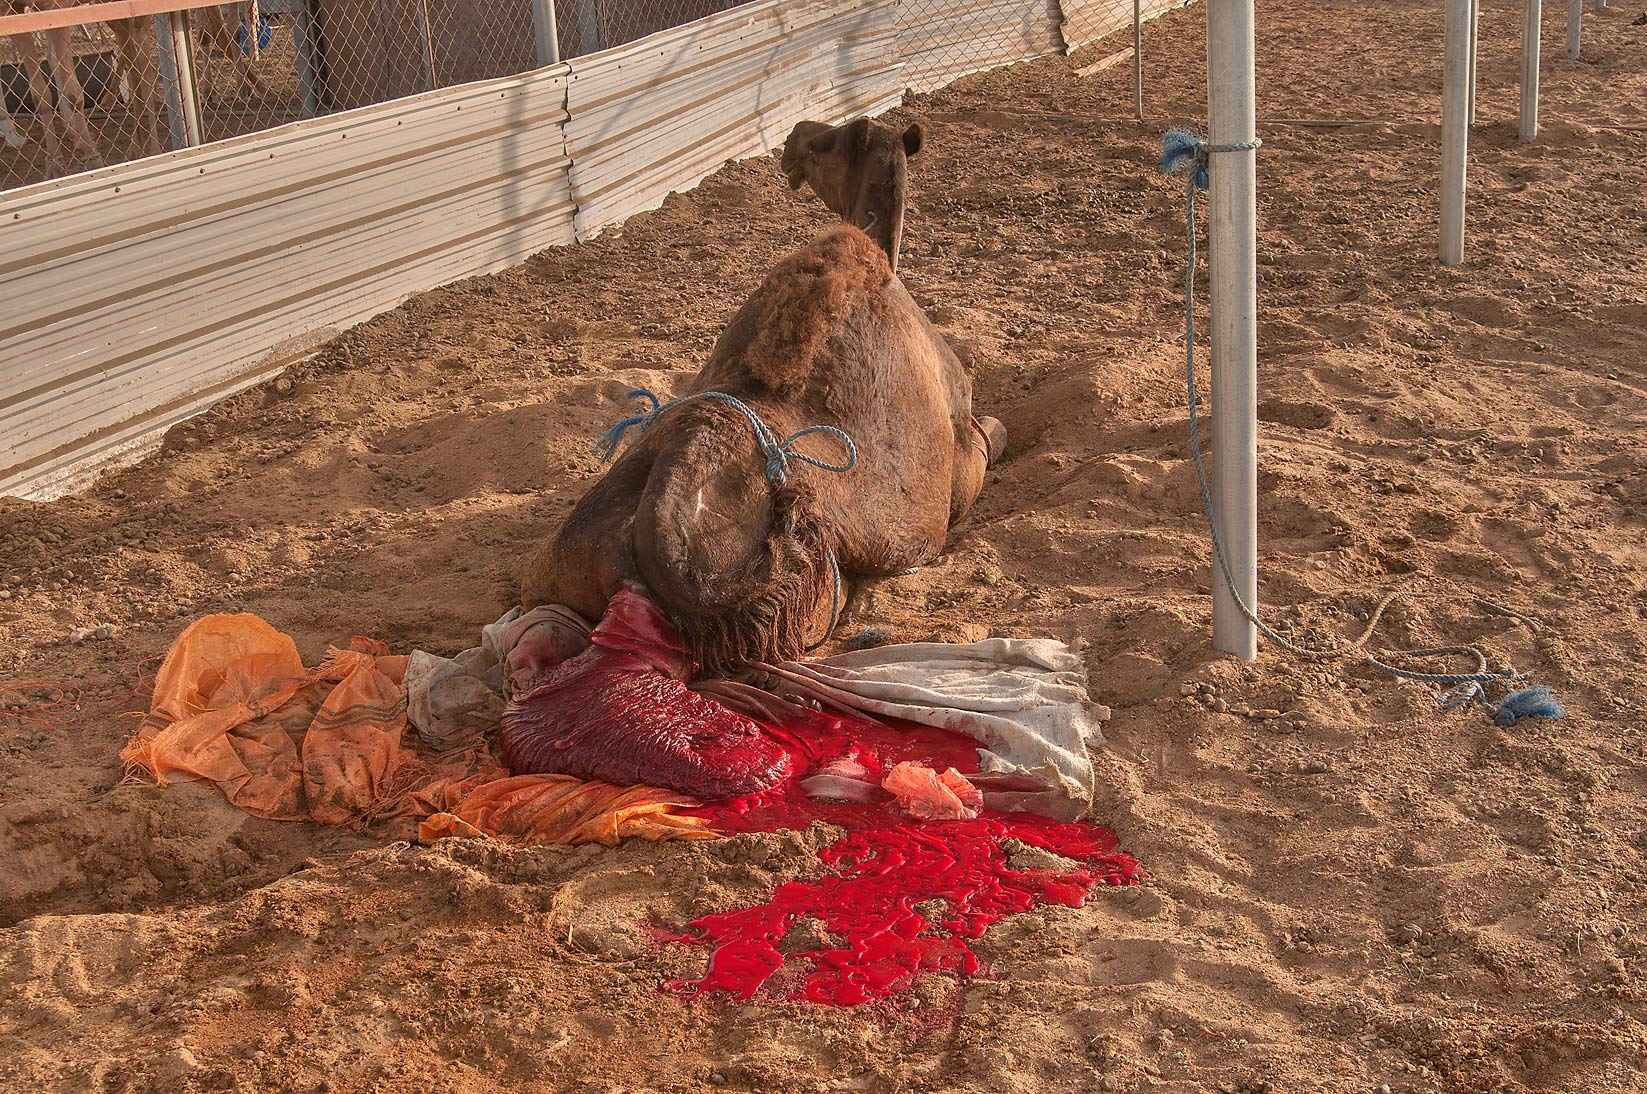 Camel excreting some red stuff from its back in...Market, Abu Hamour area. Doha, Qatar